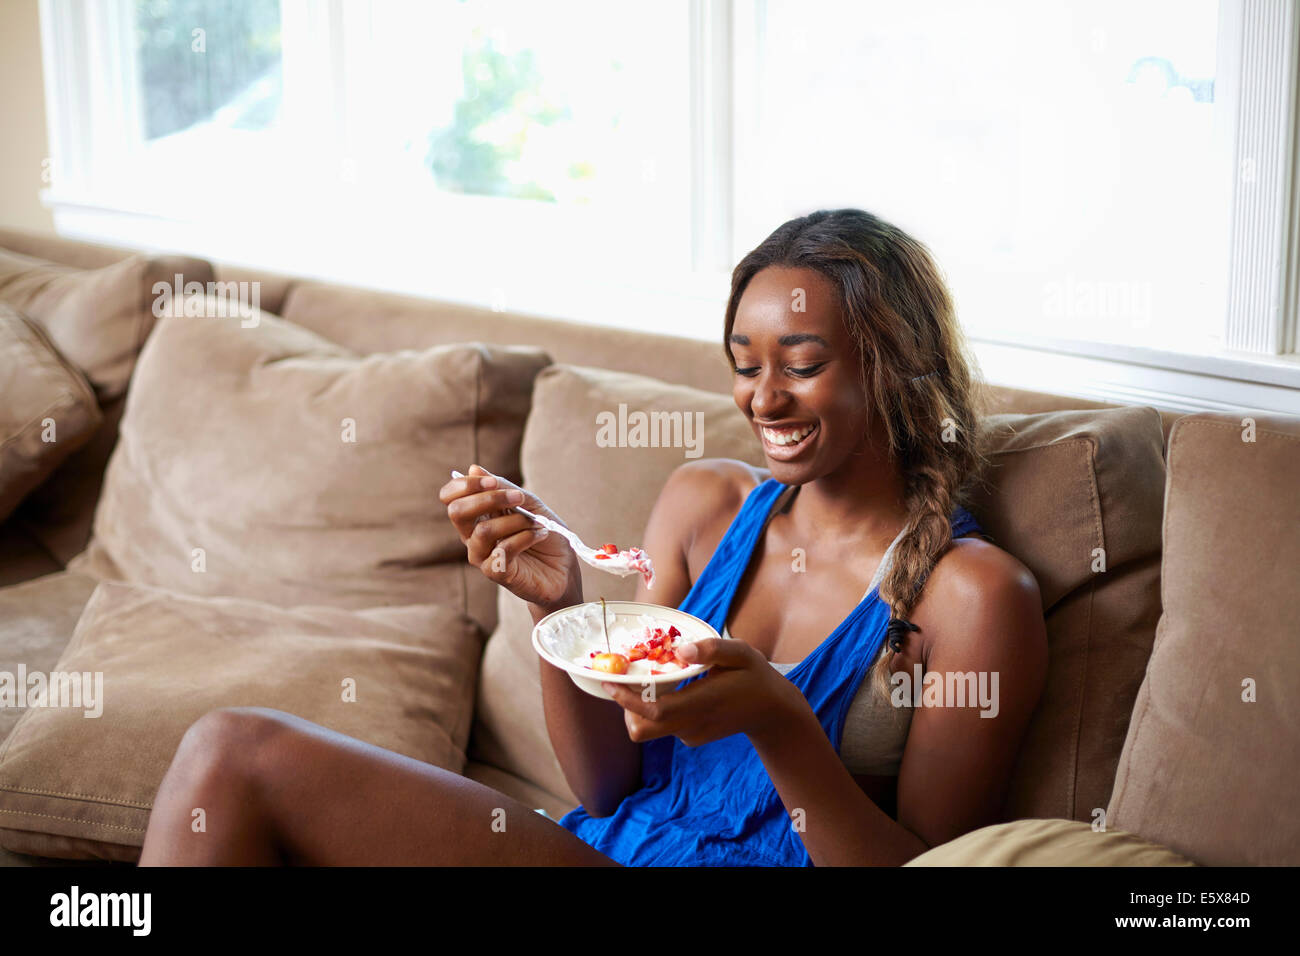 Young woman taking a training break, eating fruit on sofa - Stock Image